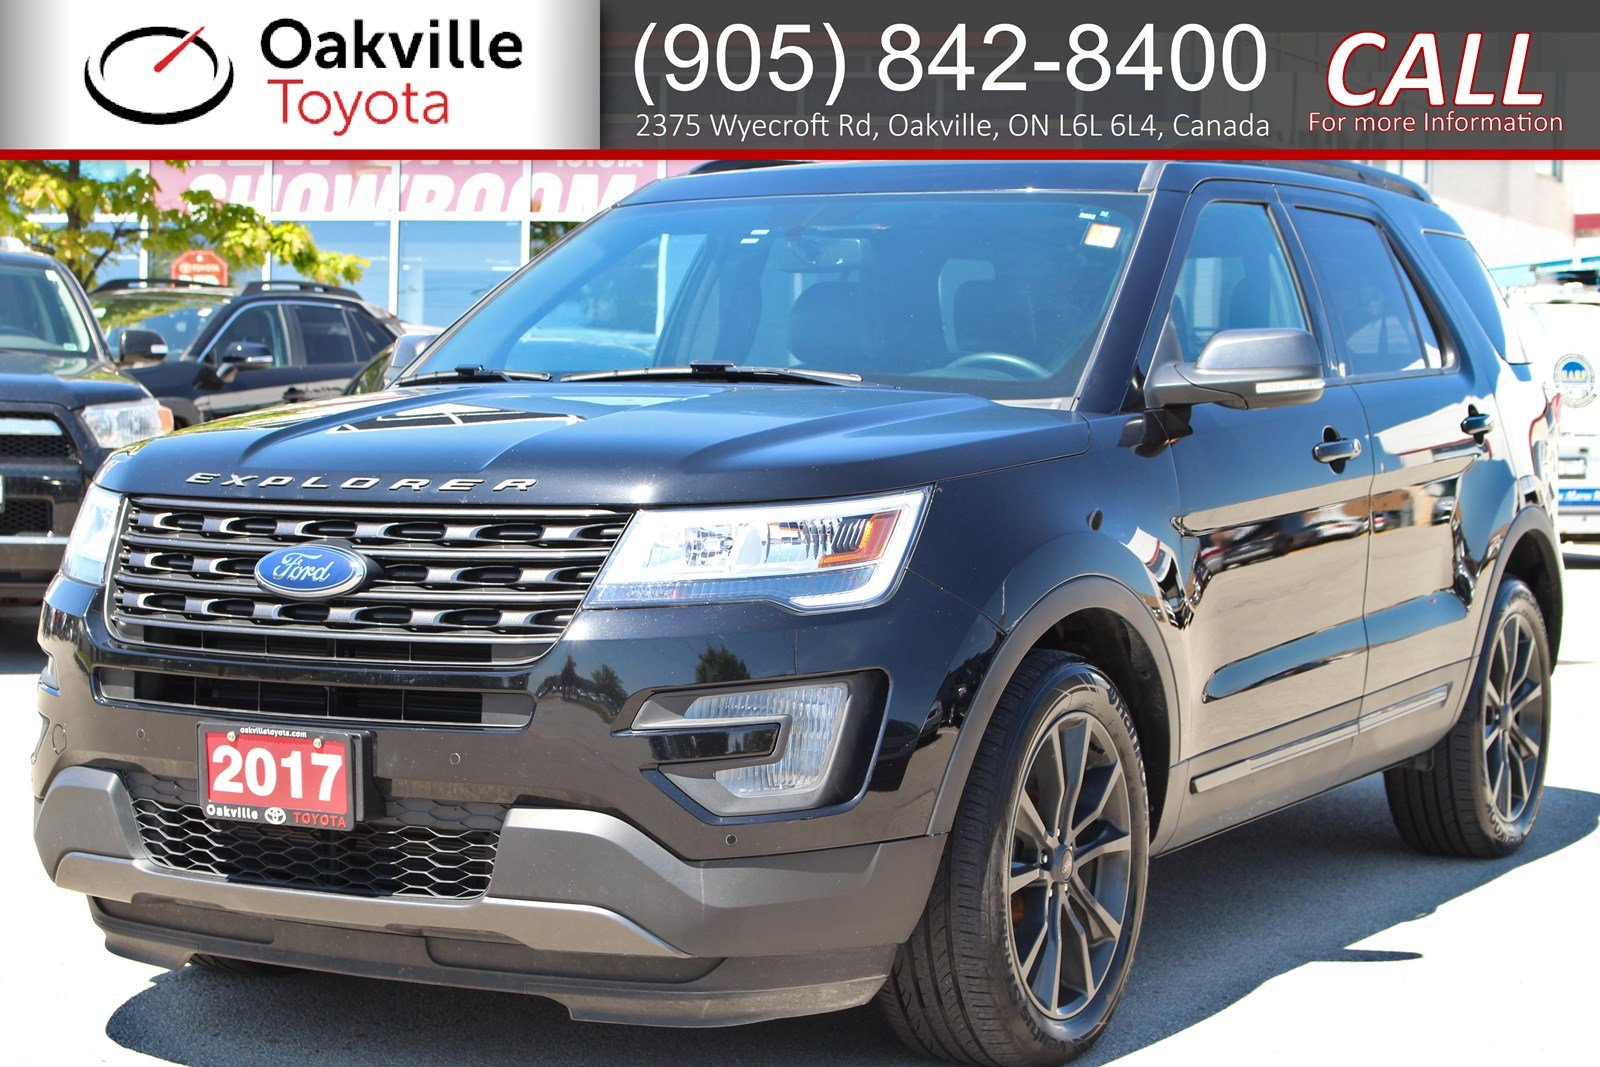 Pre-Owned 2017 Ford Explorer XLT with Clean Carfax and One Owner